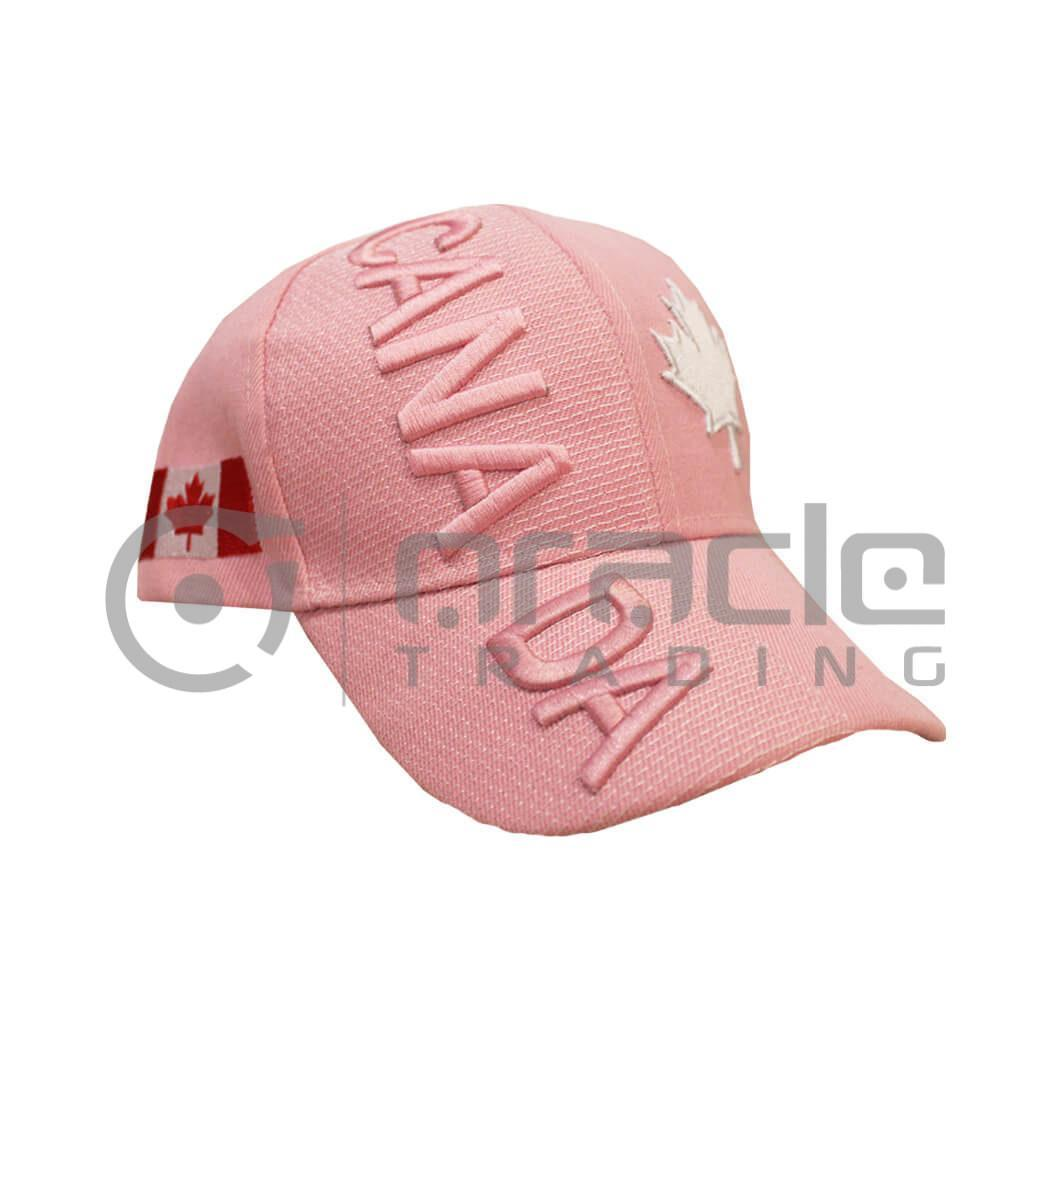 3D Canada Hat - Pink